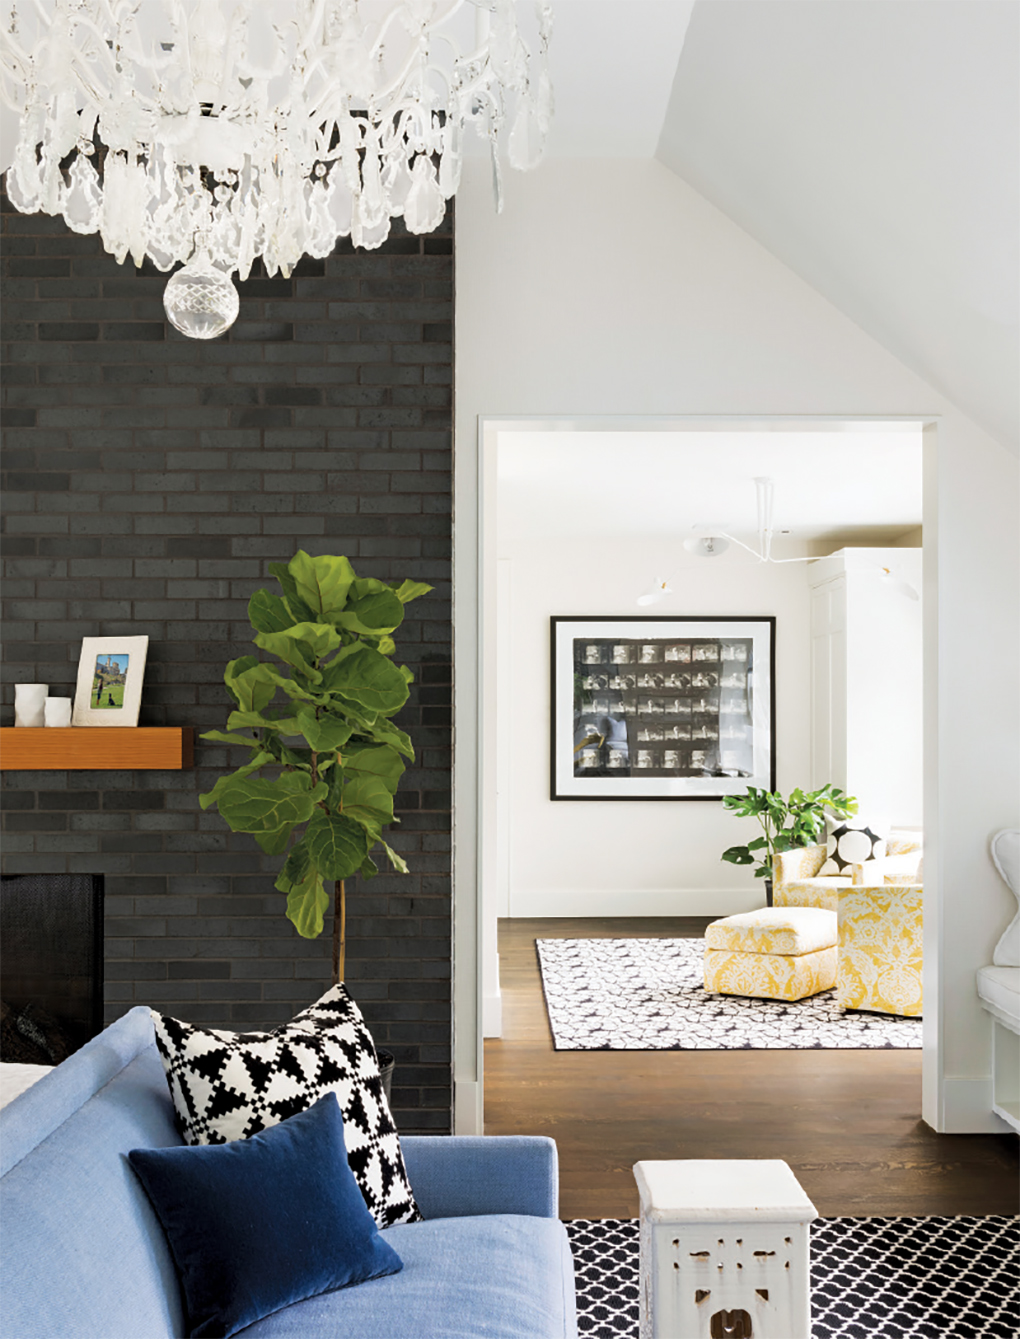 A side room adds an extra space to hang out in this home.